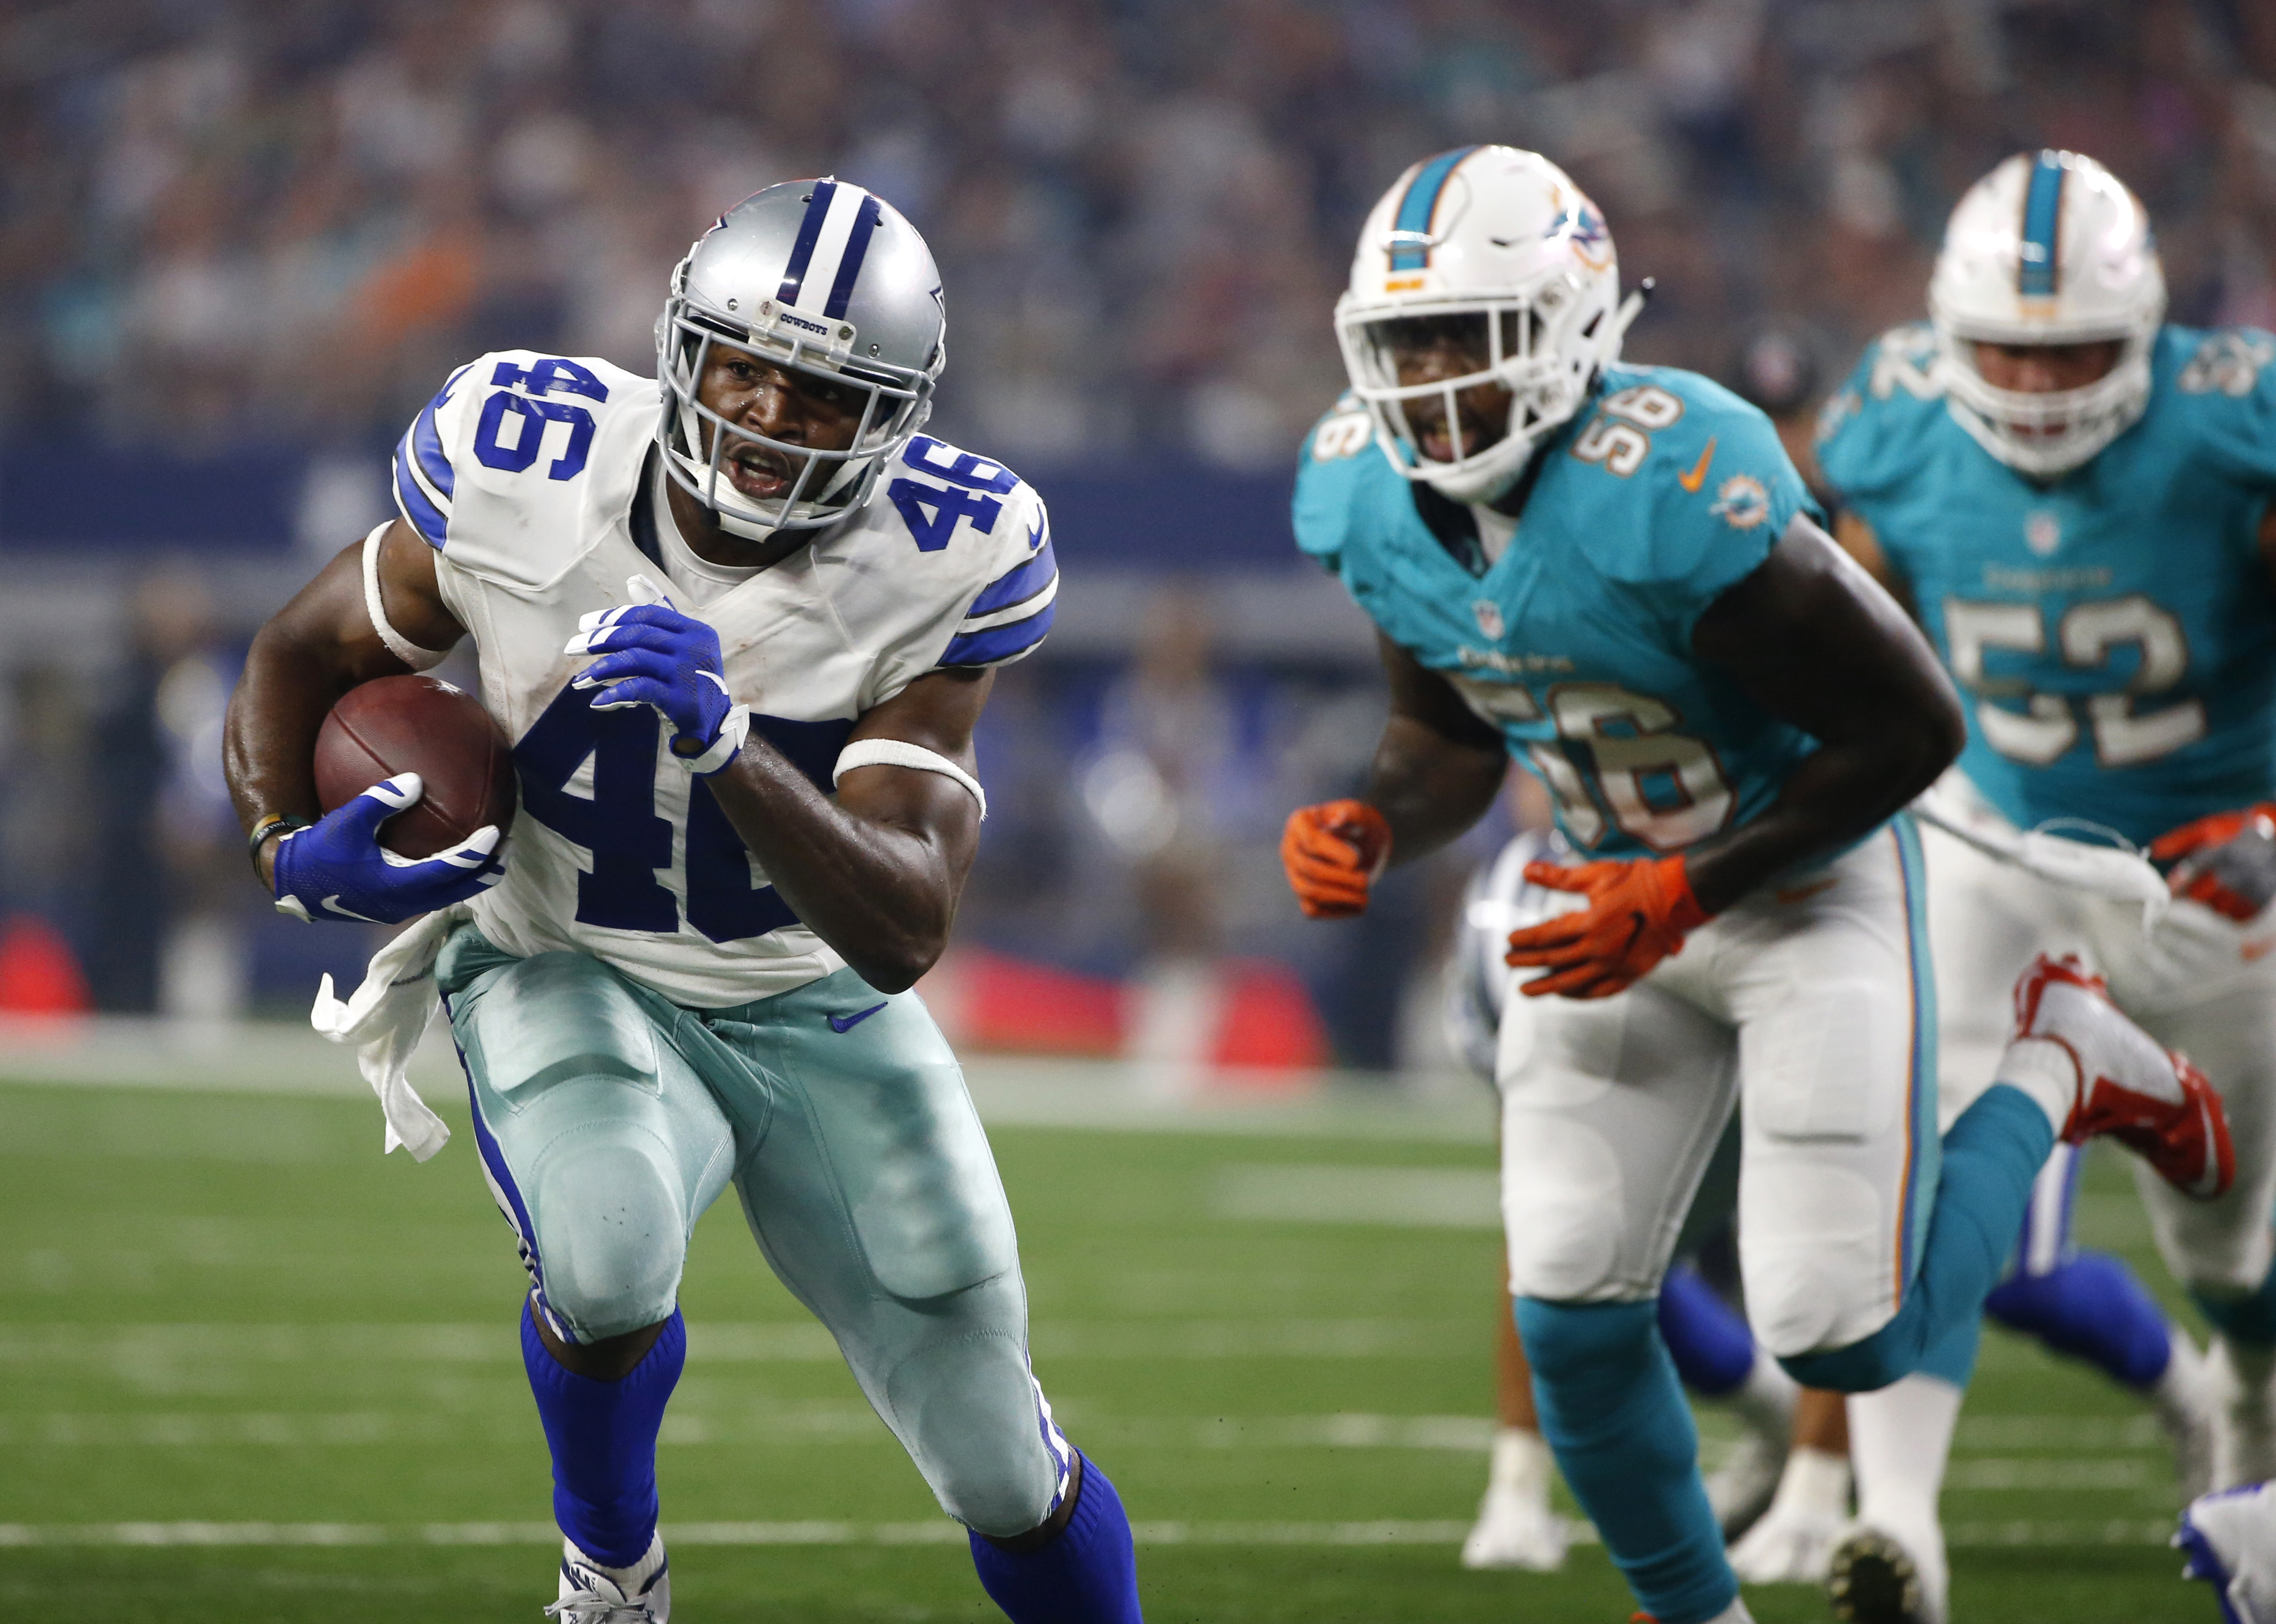 FILE - In this Aug. 19, 2016, file photo, Dallas Cowboys running back Alfred Morris (46) finds running room as Miami Dolphins linebacker James-Michael Johnson (56) gives chase during a preseason NFL football game in Arlington, Texas. Morris wont be trying